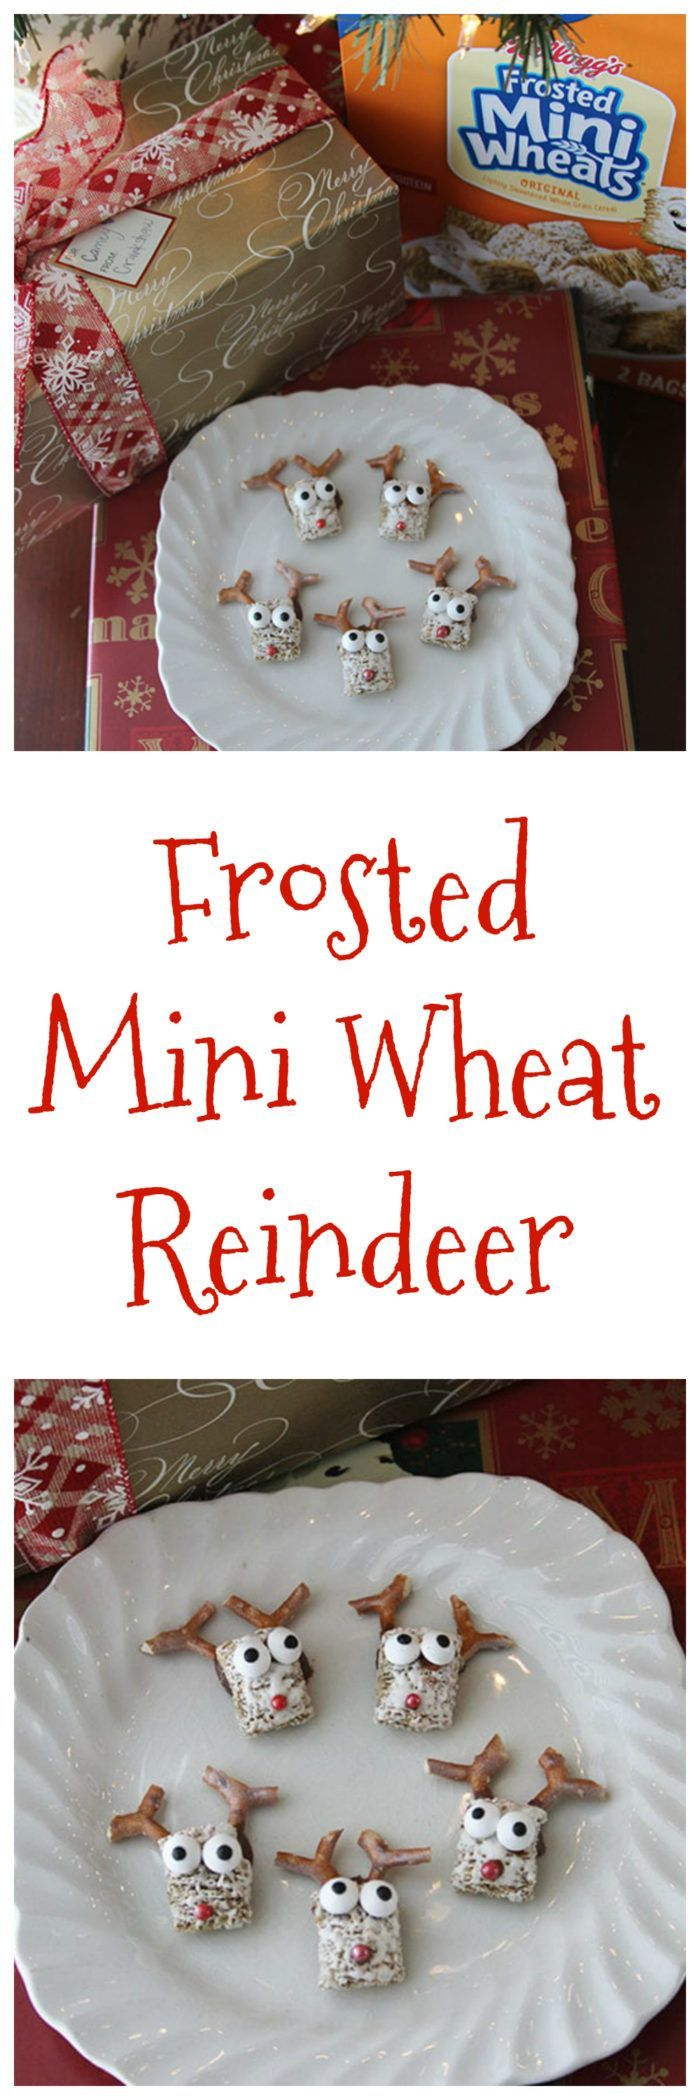 Frosted Mini Wheat Reindeer are an adorable, festive holiday treat using one of our favorite cereal!! #ad @kelloggs @samsclub #KelloggsCerealYourWay via @ruth_knudsen